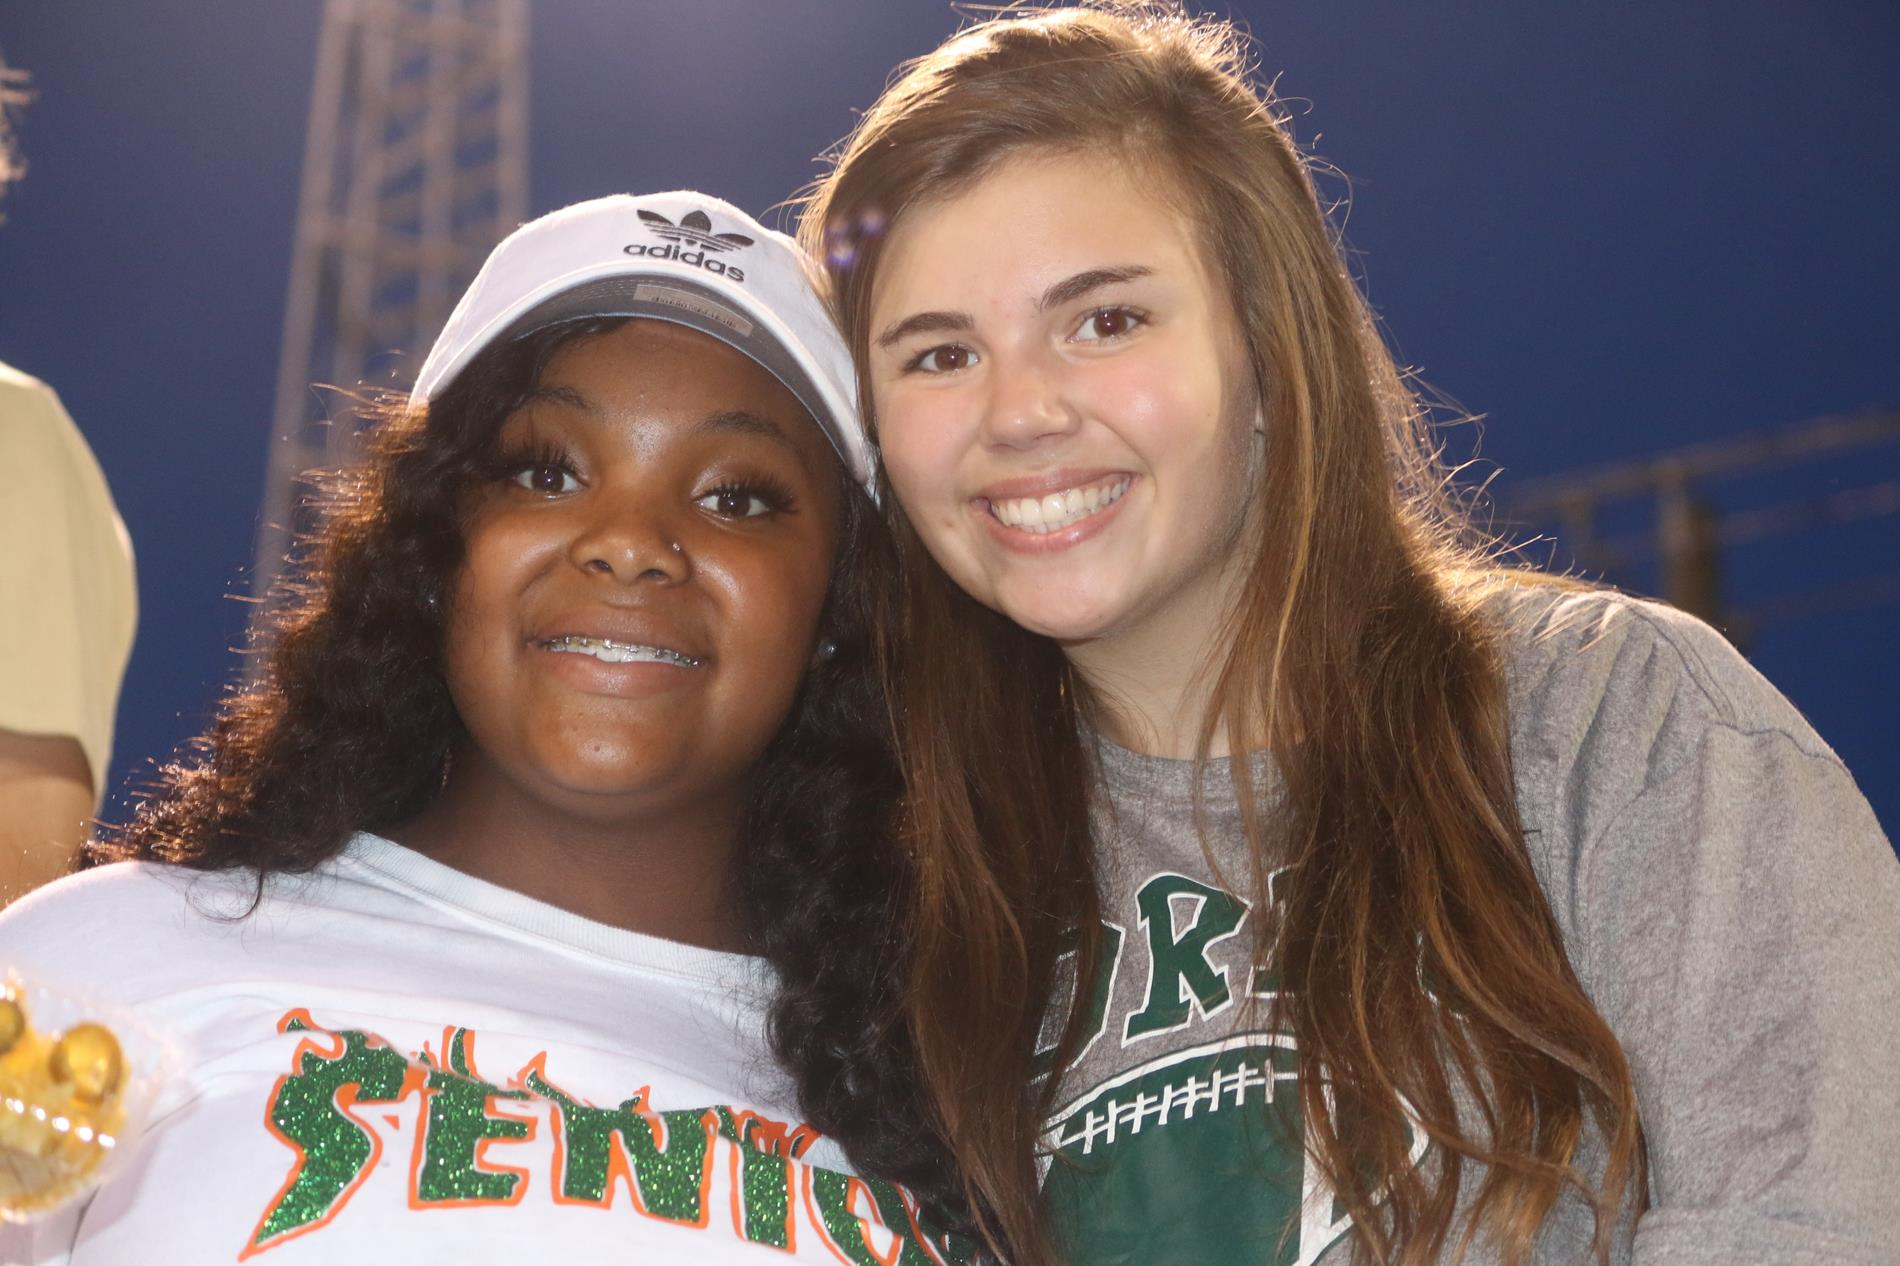 Tamia and Anna cheering on the Greenwave